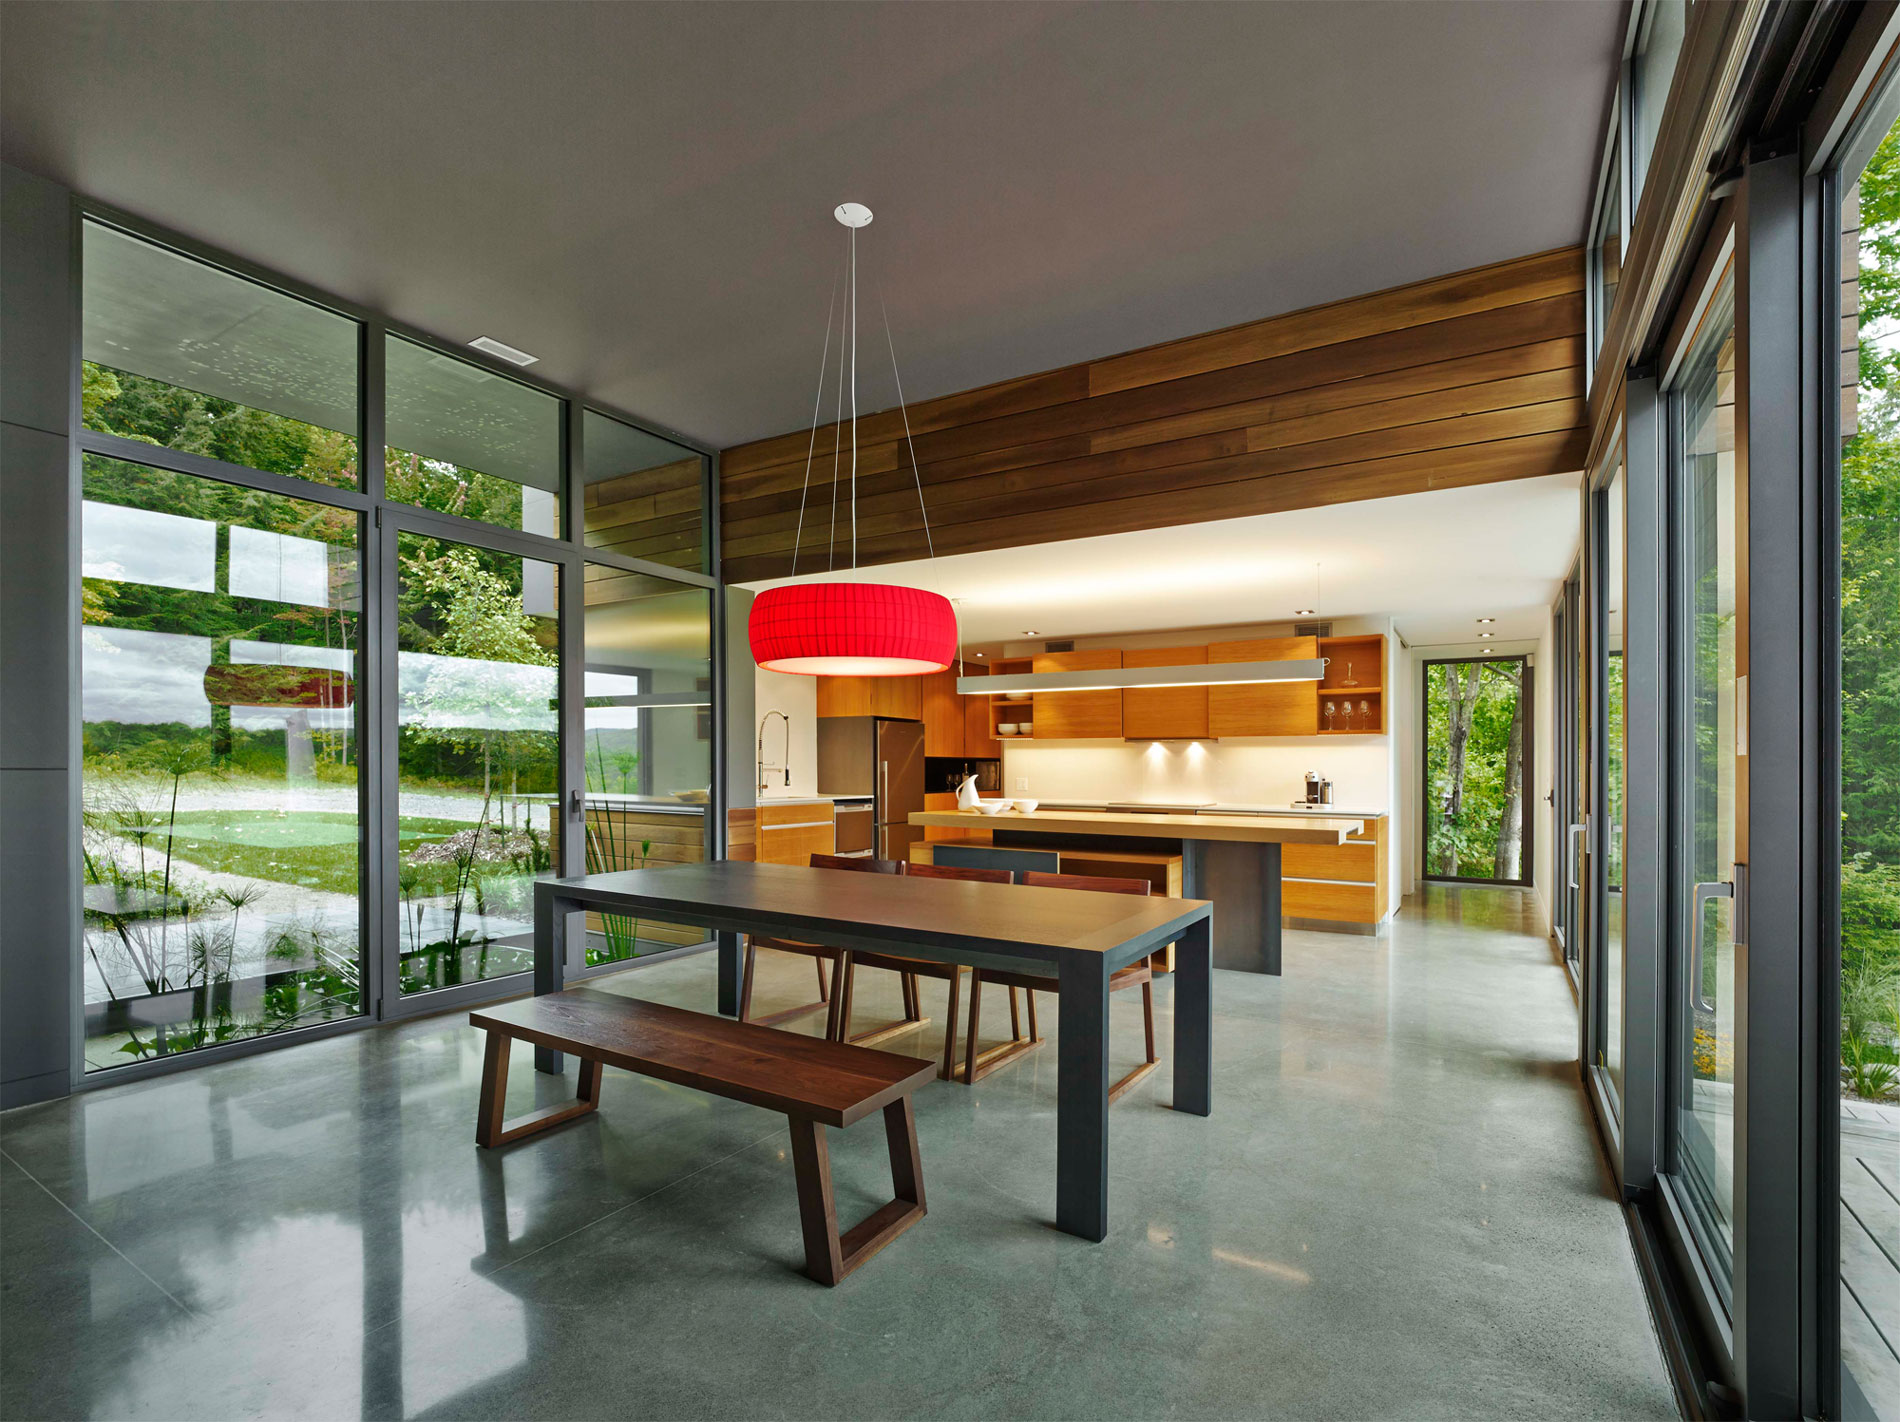 T House by Natalie Dionne Architecture (13)